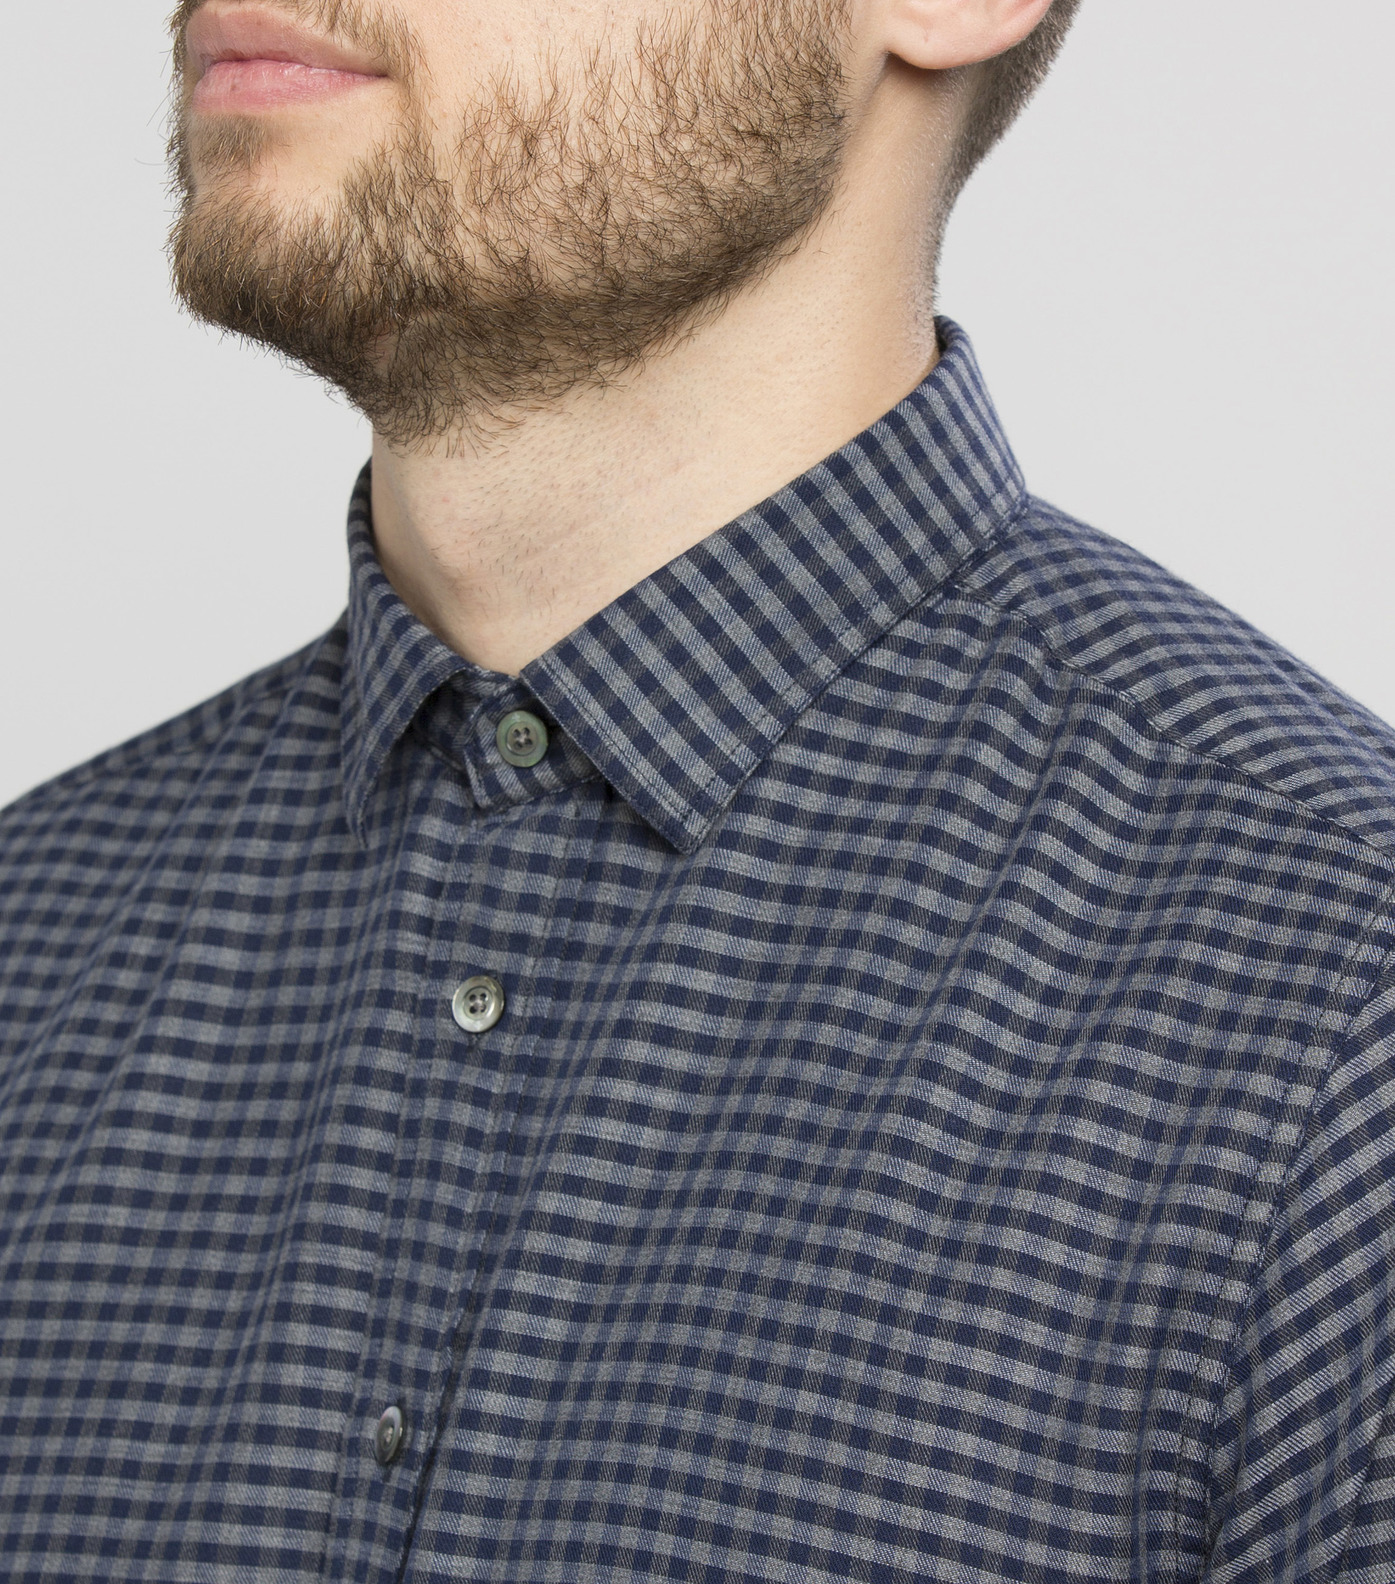 SHIRT JAROSLAW - Checks